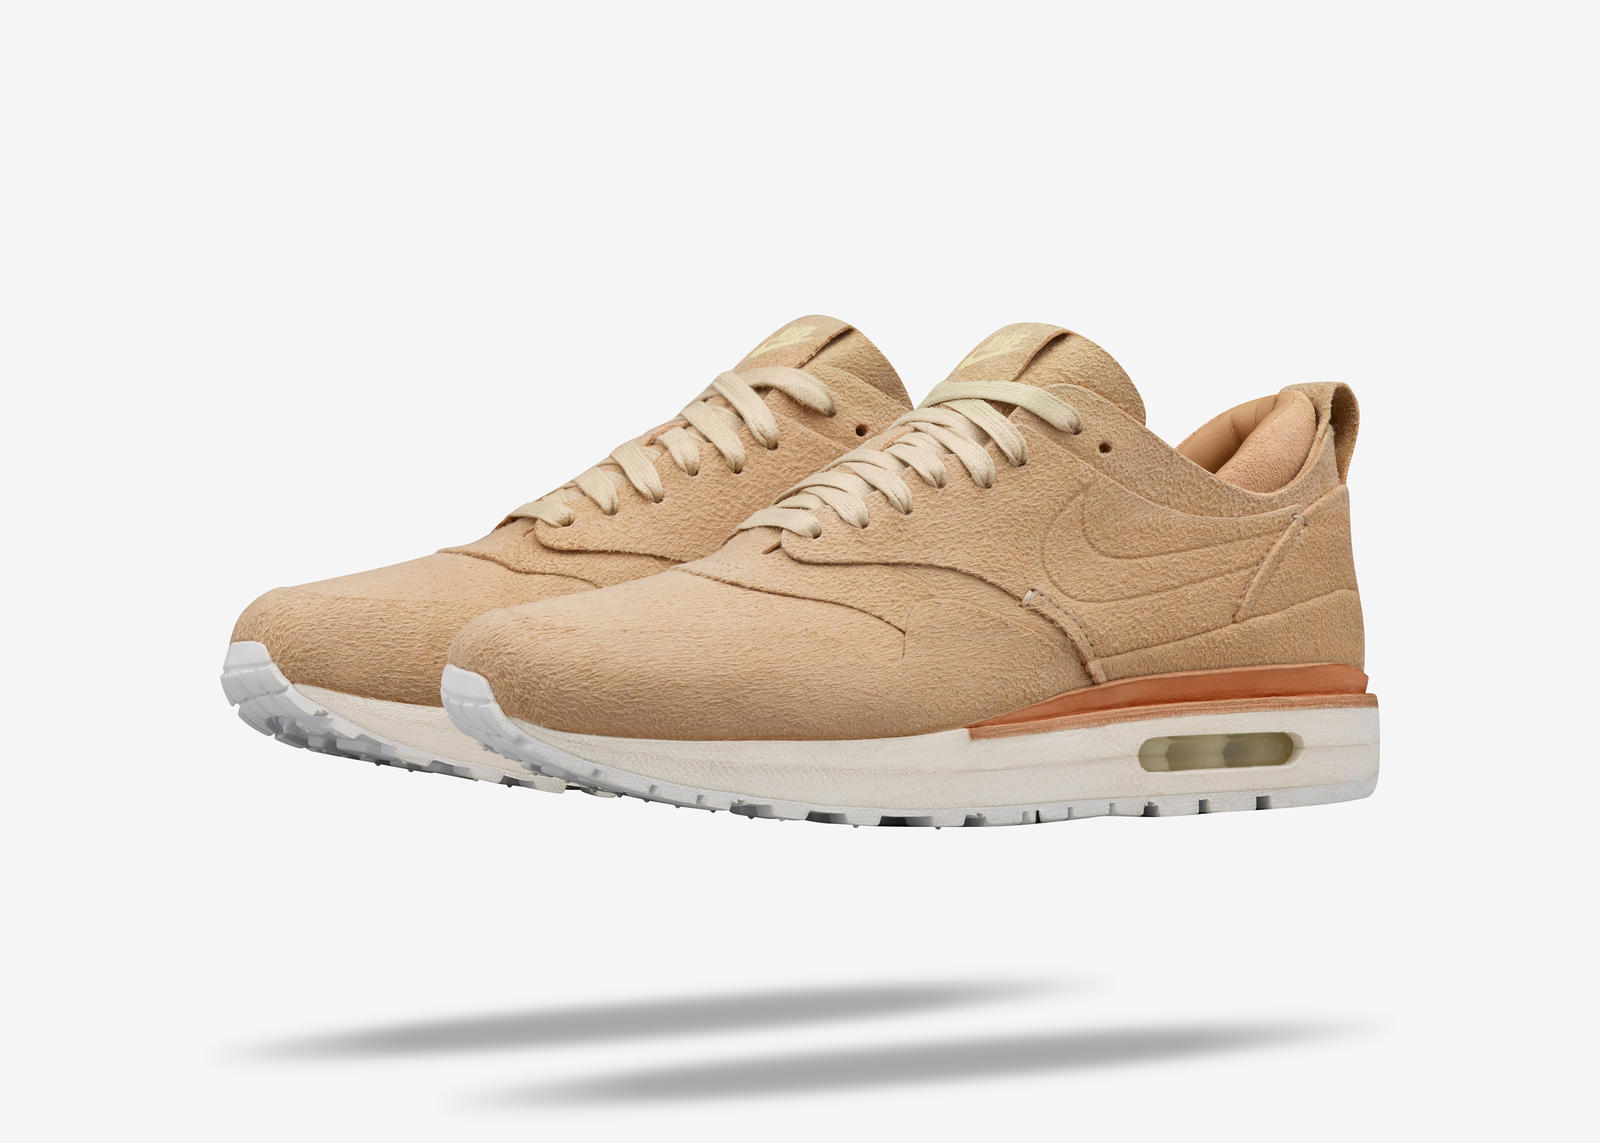 reputable site 4386c dd3a9 NikeLab Air Max 1 Royal7